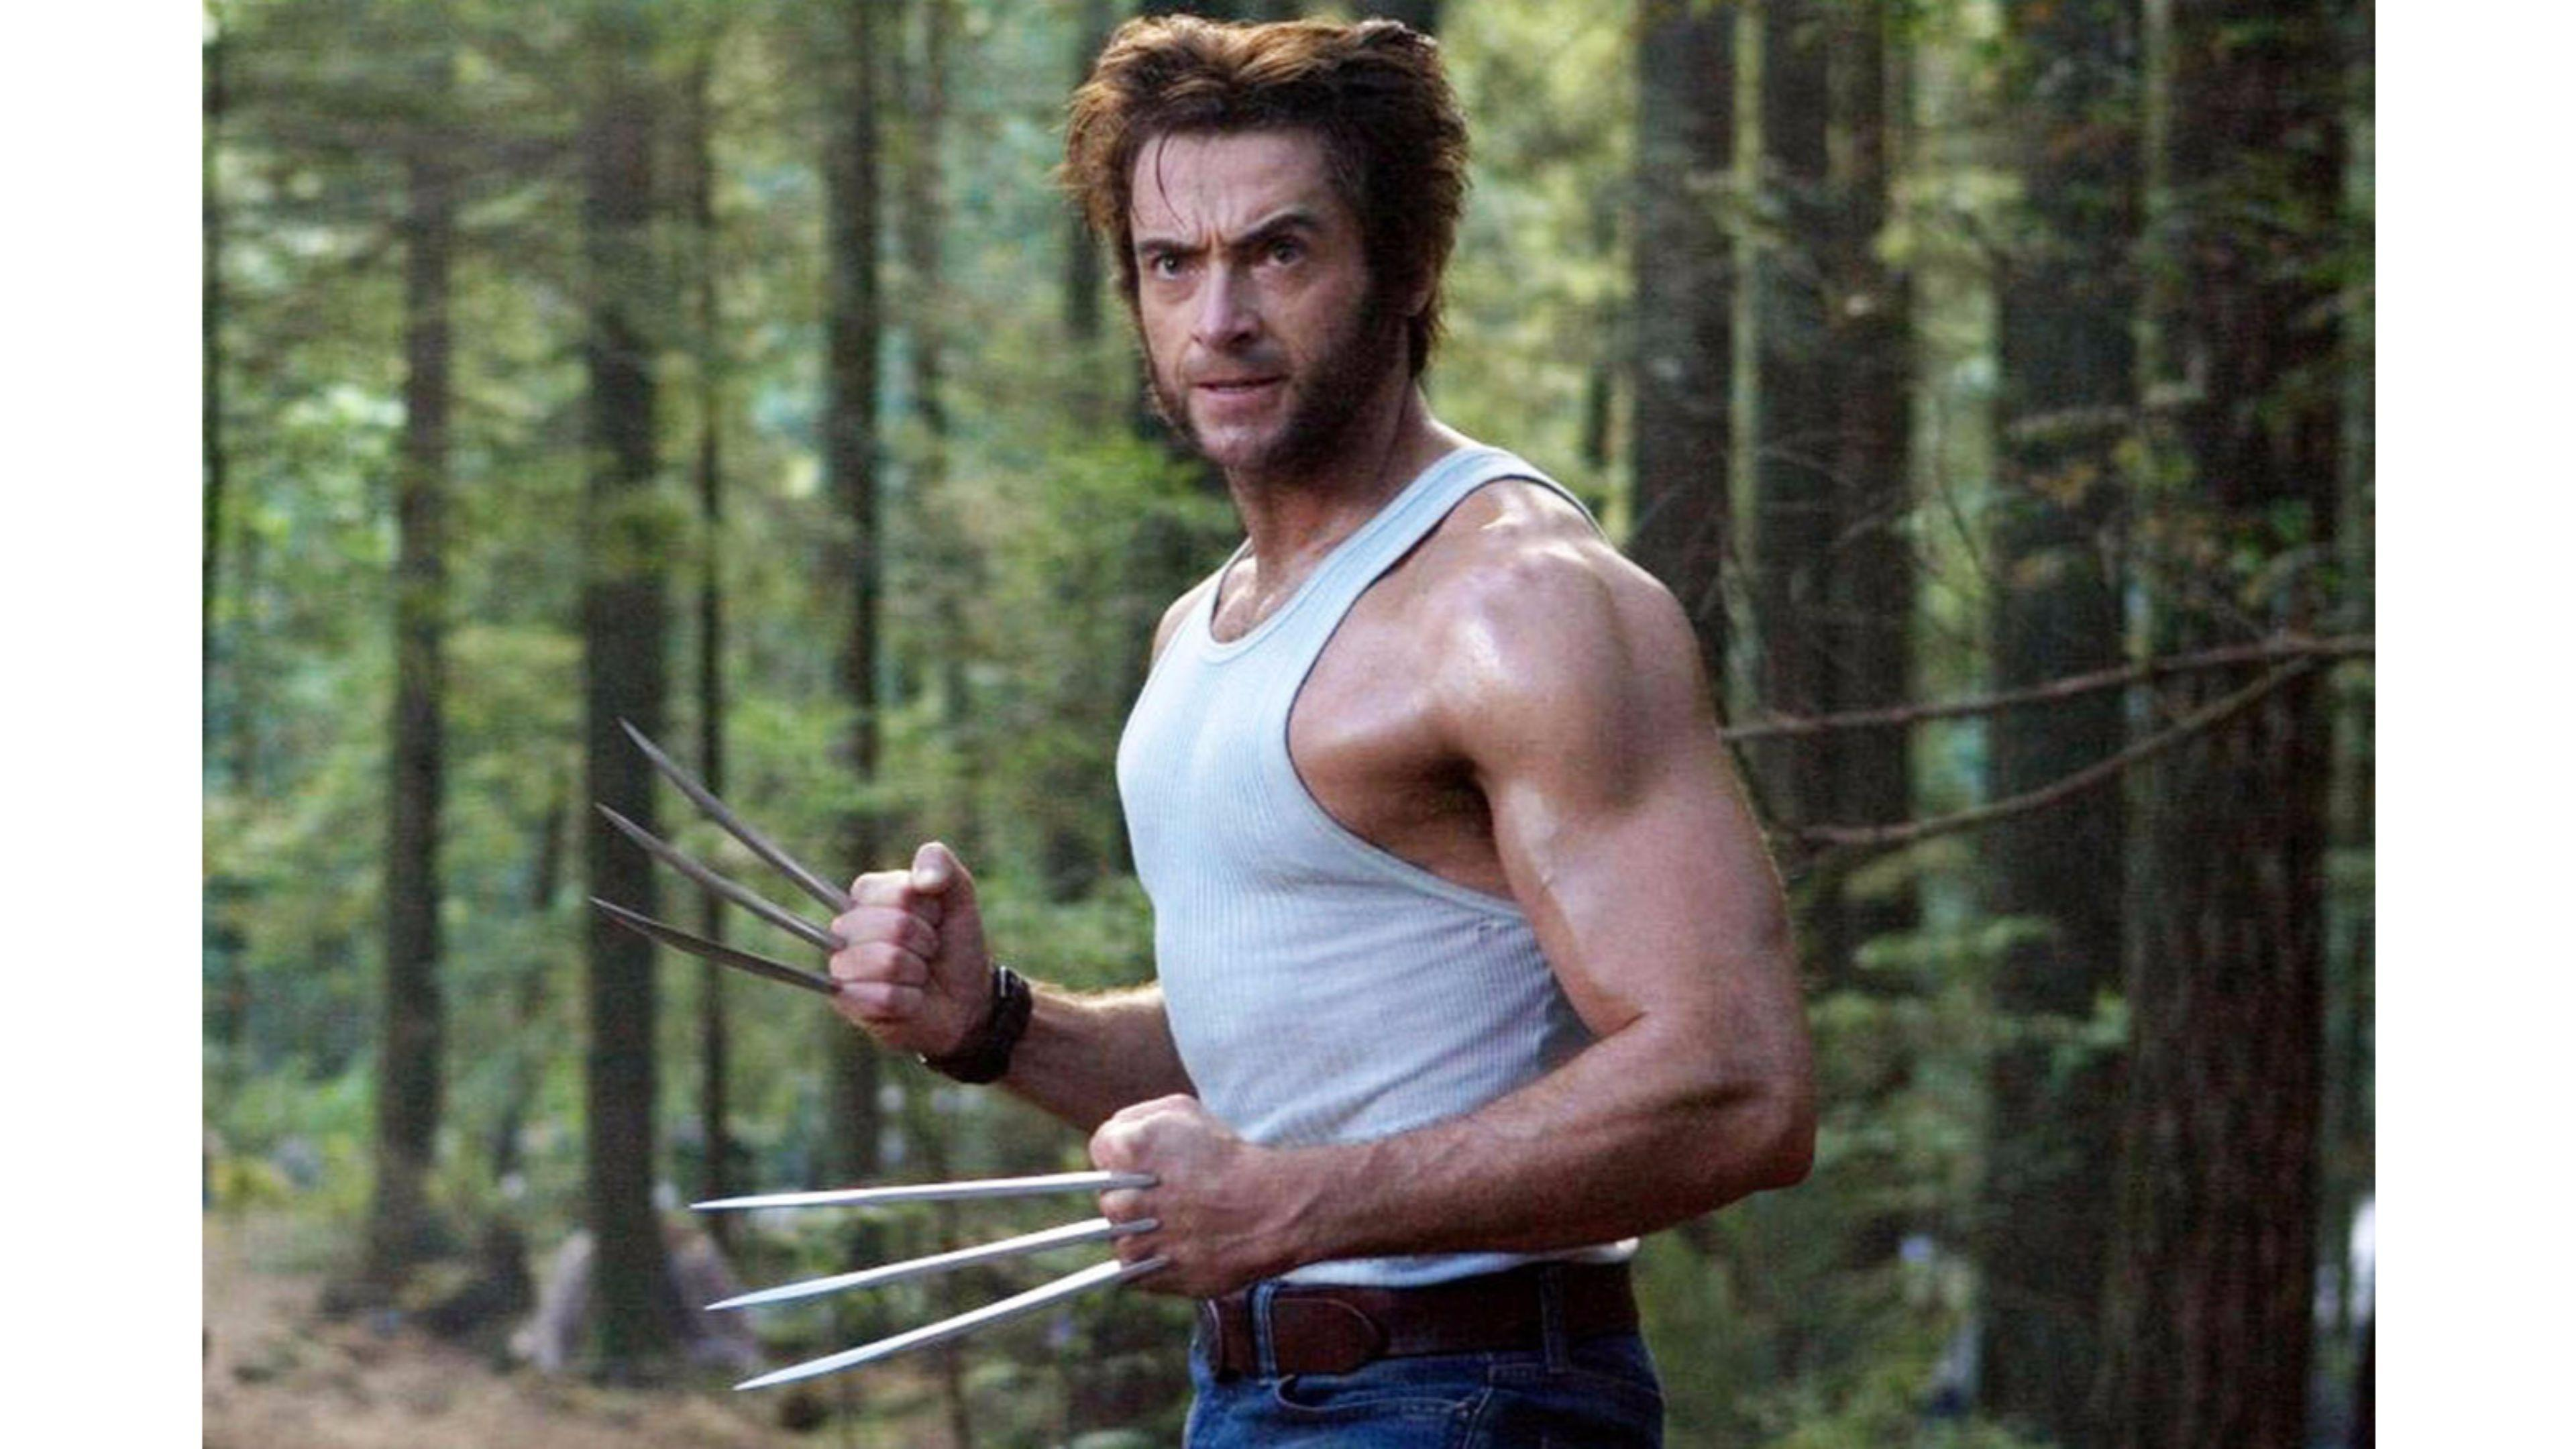 Hugh Jackman Wallpapers Hd: The Wolverine 2016 Wallpapers